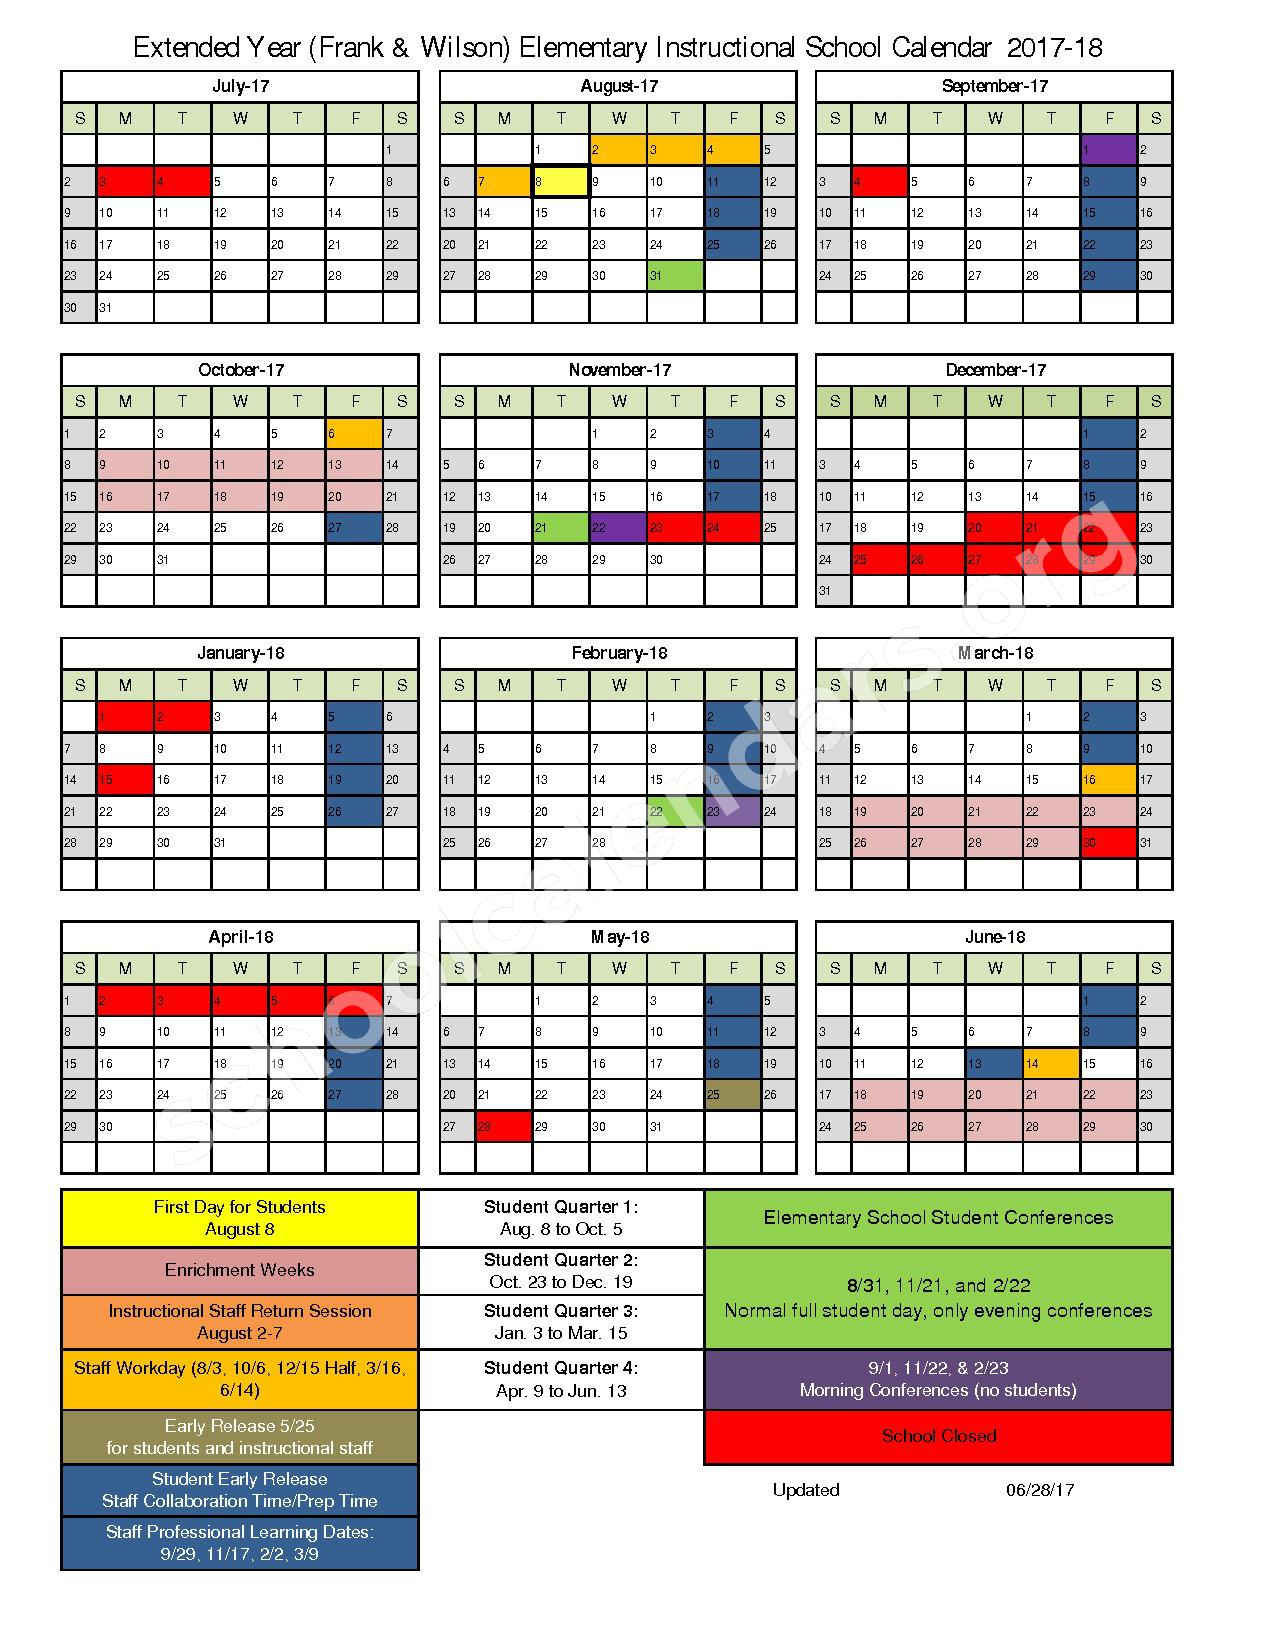 2017 - 2018 Extended Year Elementary Instructional Calendar – Wilson Elementary School – page 1